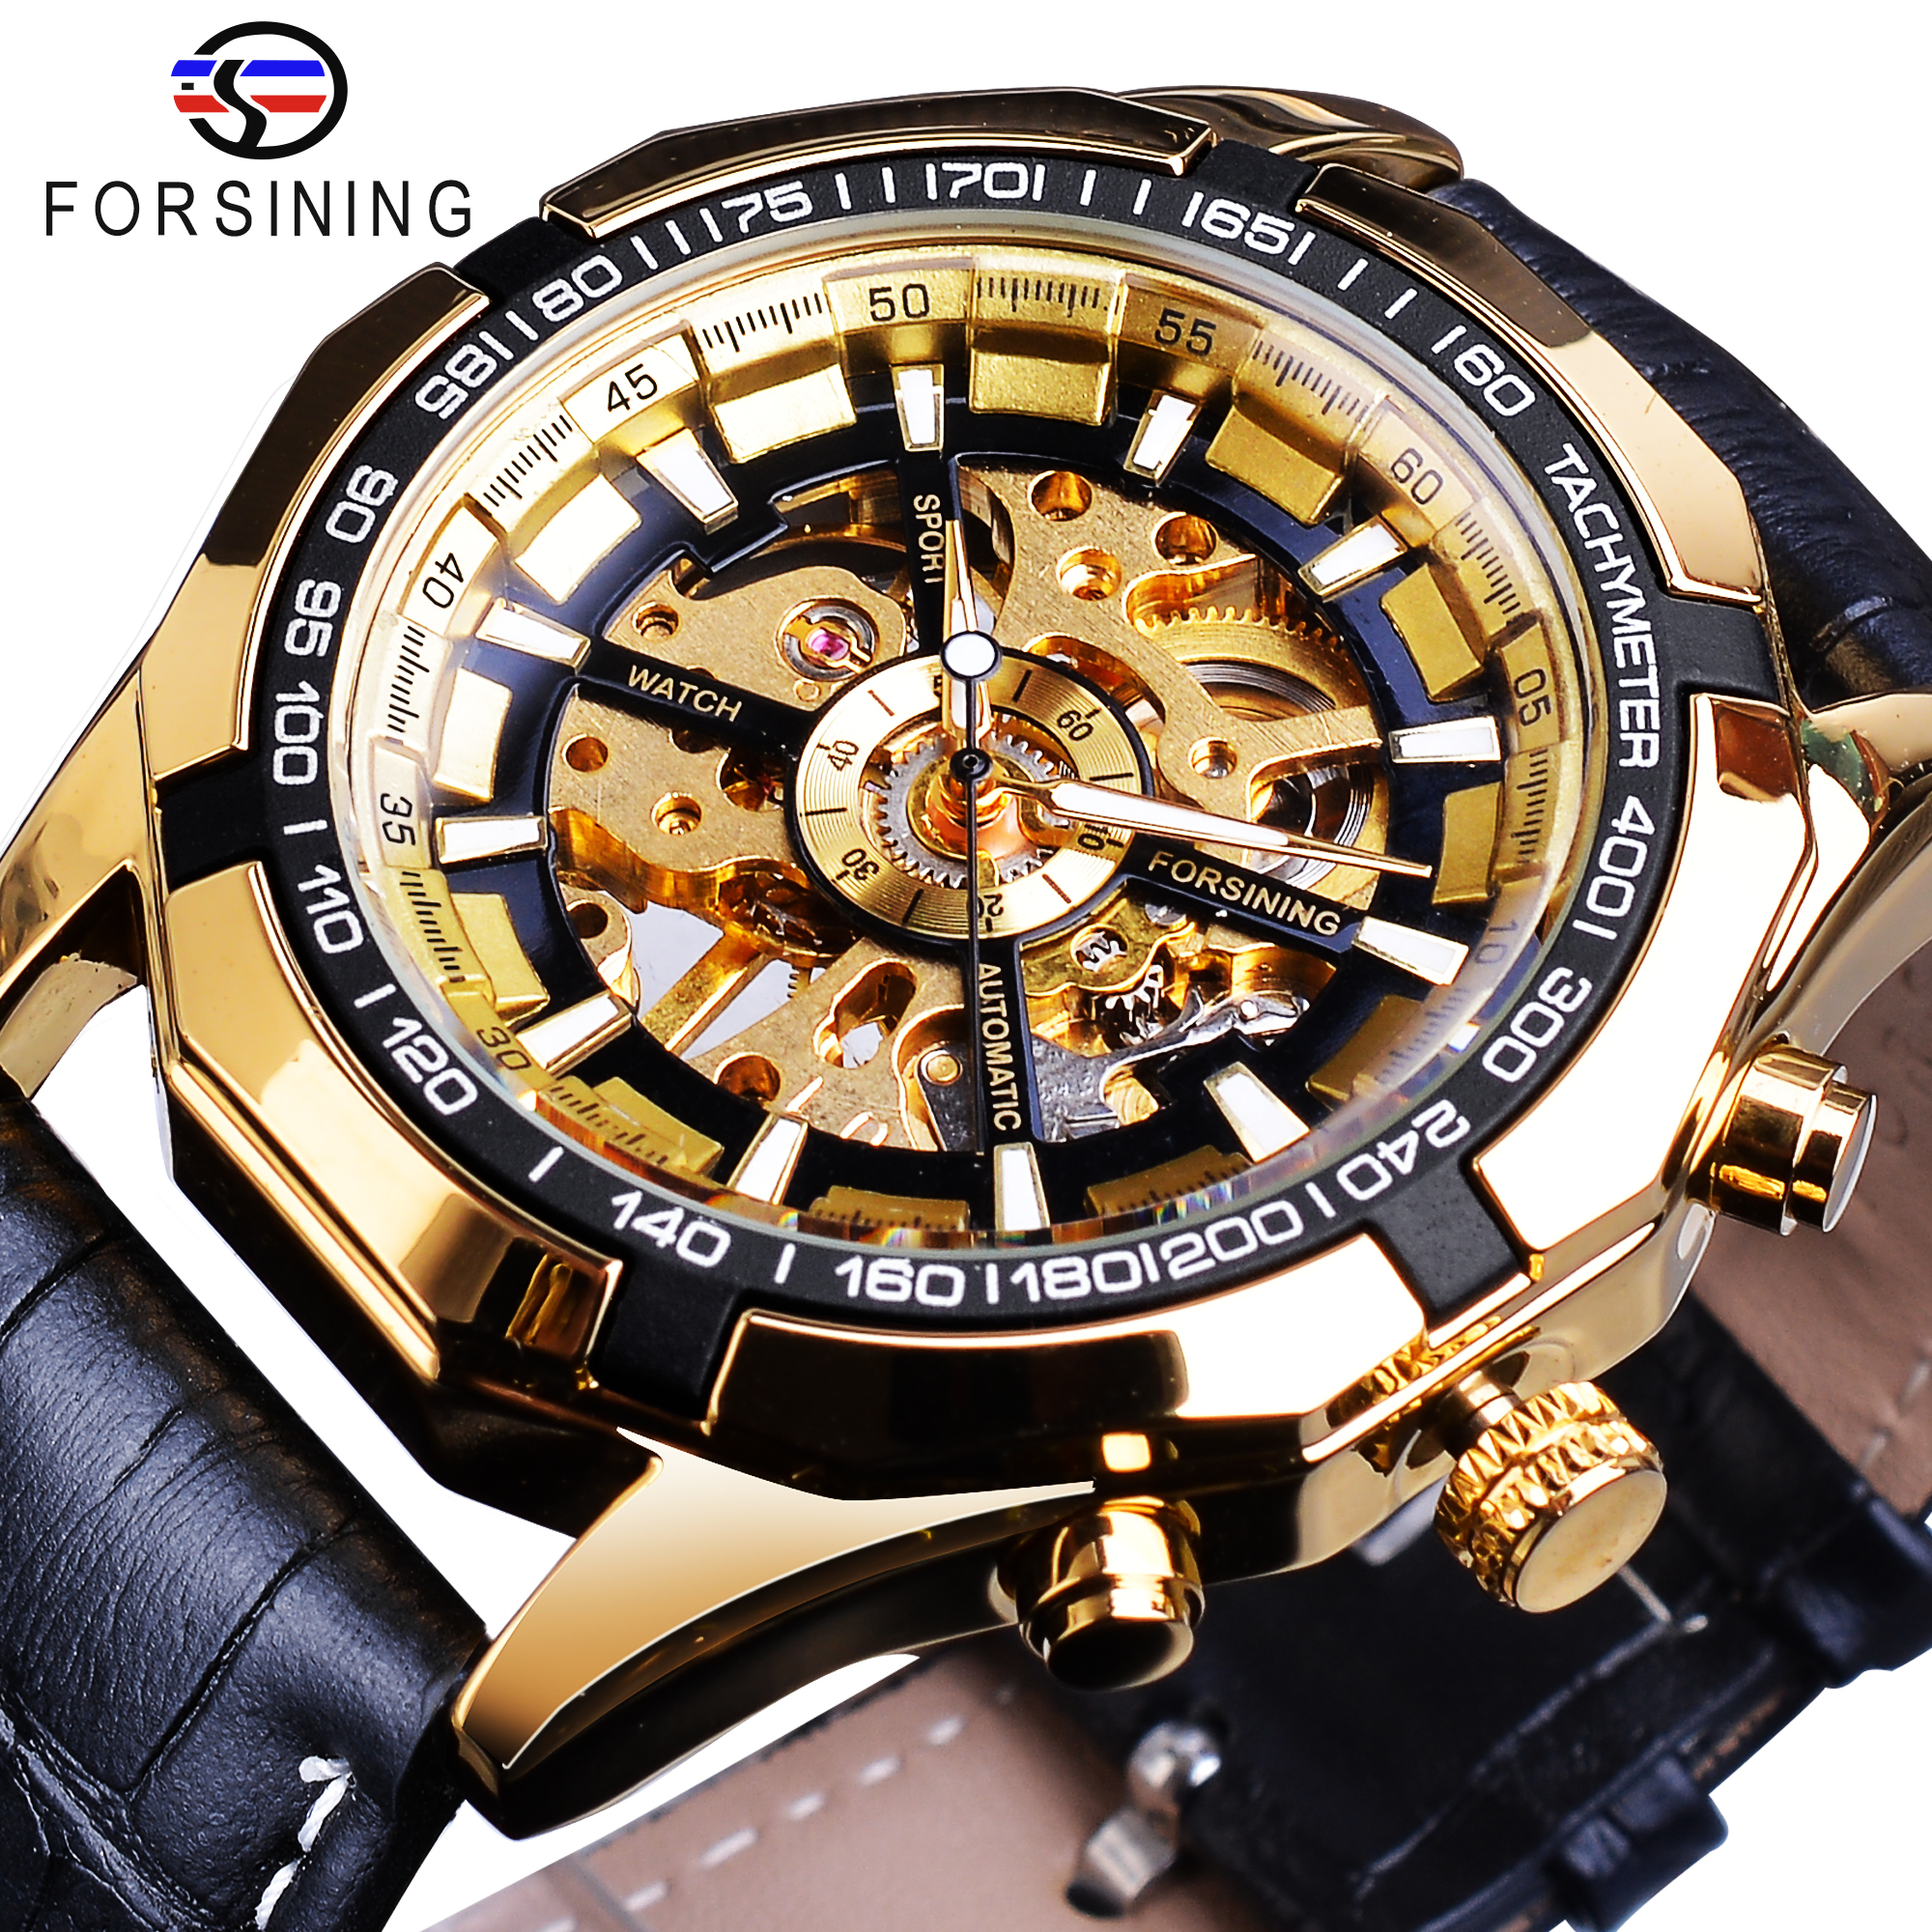 Forsining Brand Watch Men Skeleton Automatic Mechanical Watches Golden Skeleton Leather Wristwatch Top Brand Luxury Montre HommeForsining Brand Watch Men Skeleton Automatic Mechanical Watches Golden Skeleton Leather Wristwatch Top Brand Luxury Montre Homme